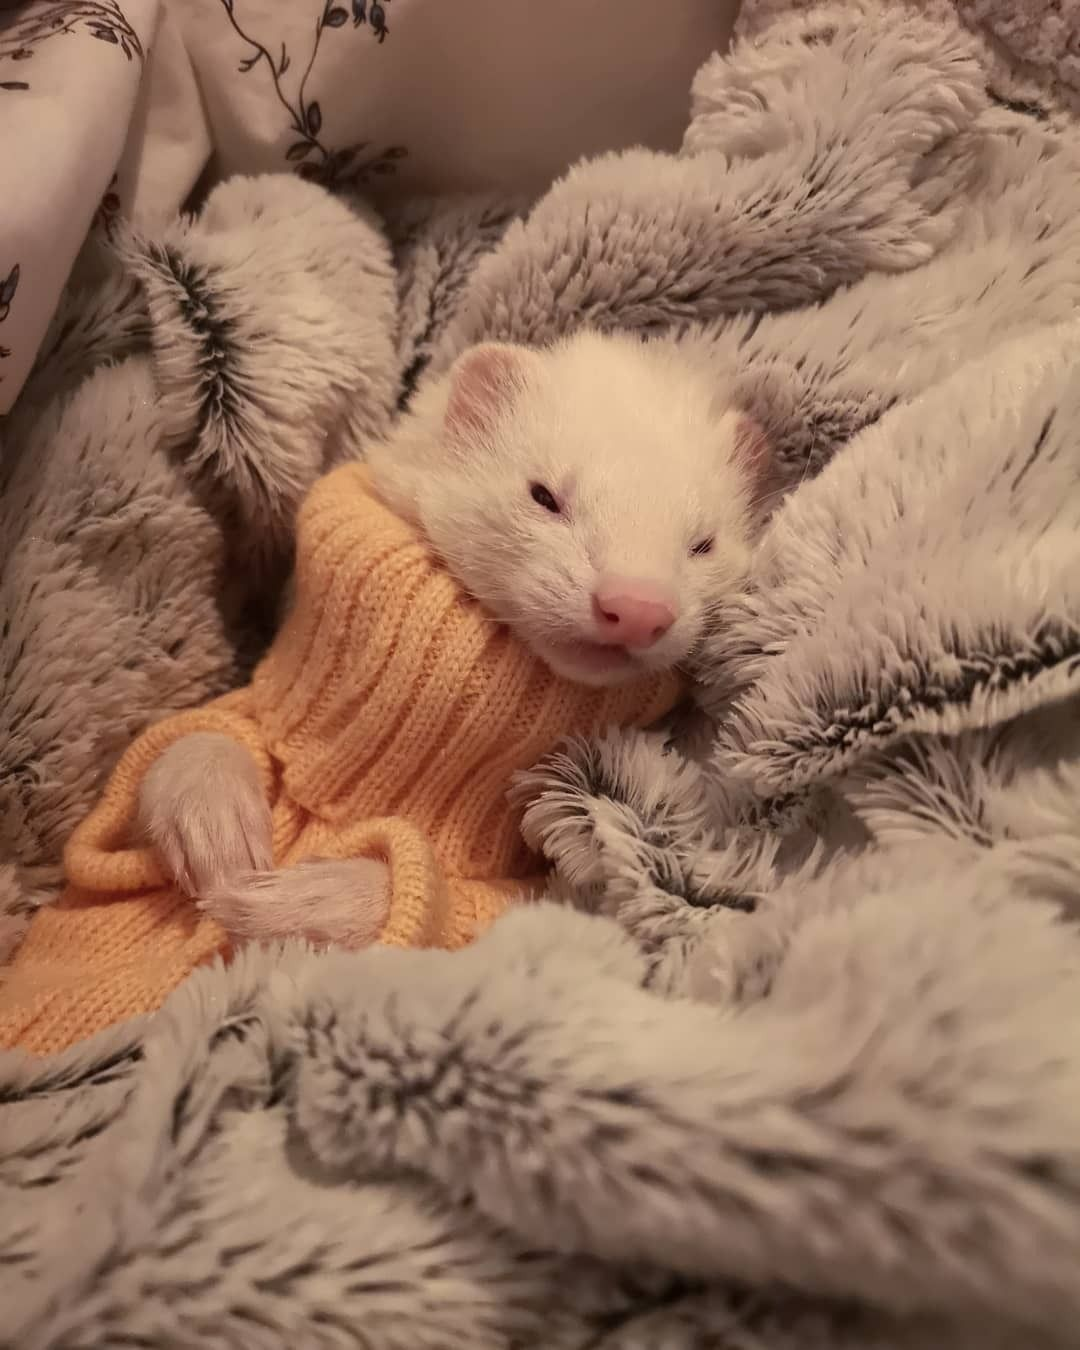 The Ferrets My Little Noodlebutt Turned 6 Years Old Today In